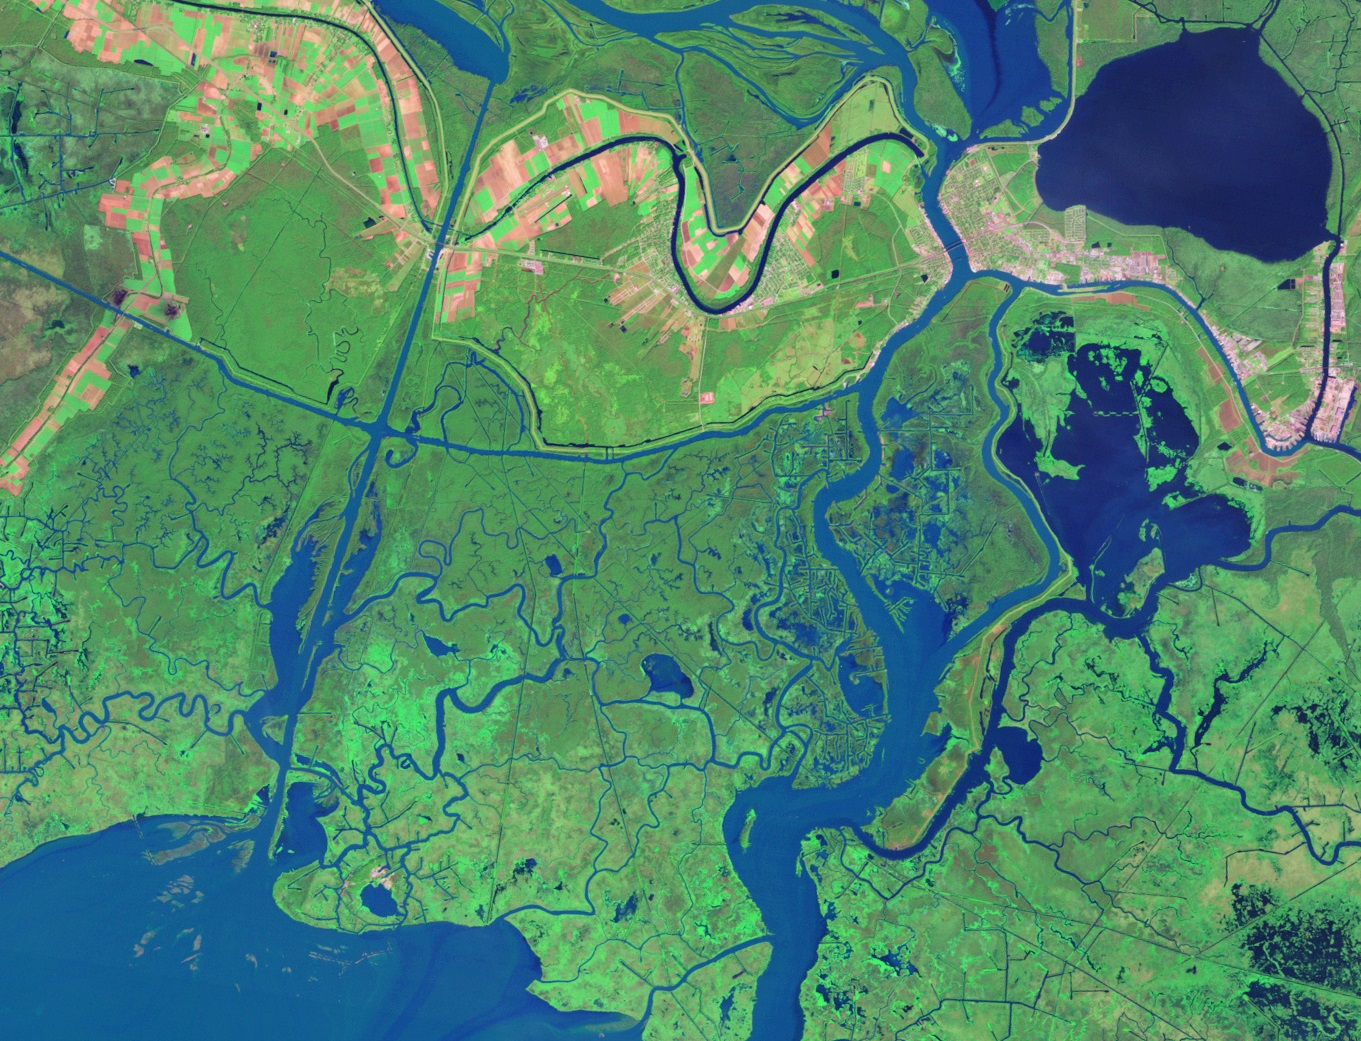 The new Delta-X project will study the Mississippi River Delta and the processes that build and maintain land in major river deltas threatened by rising seas.